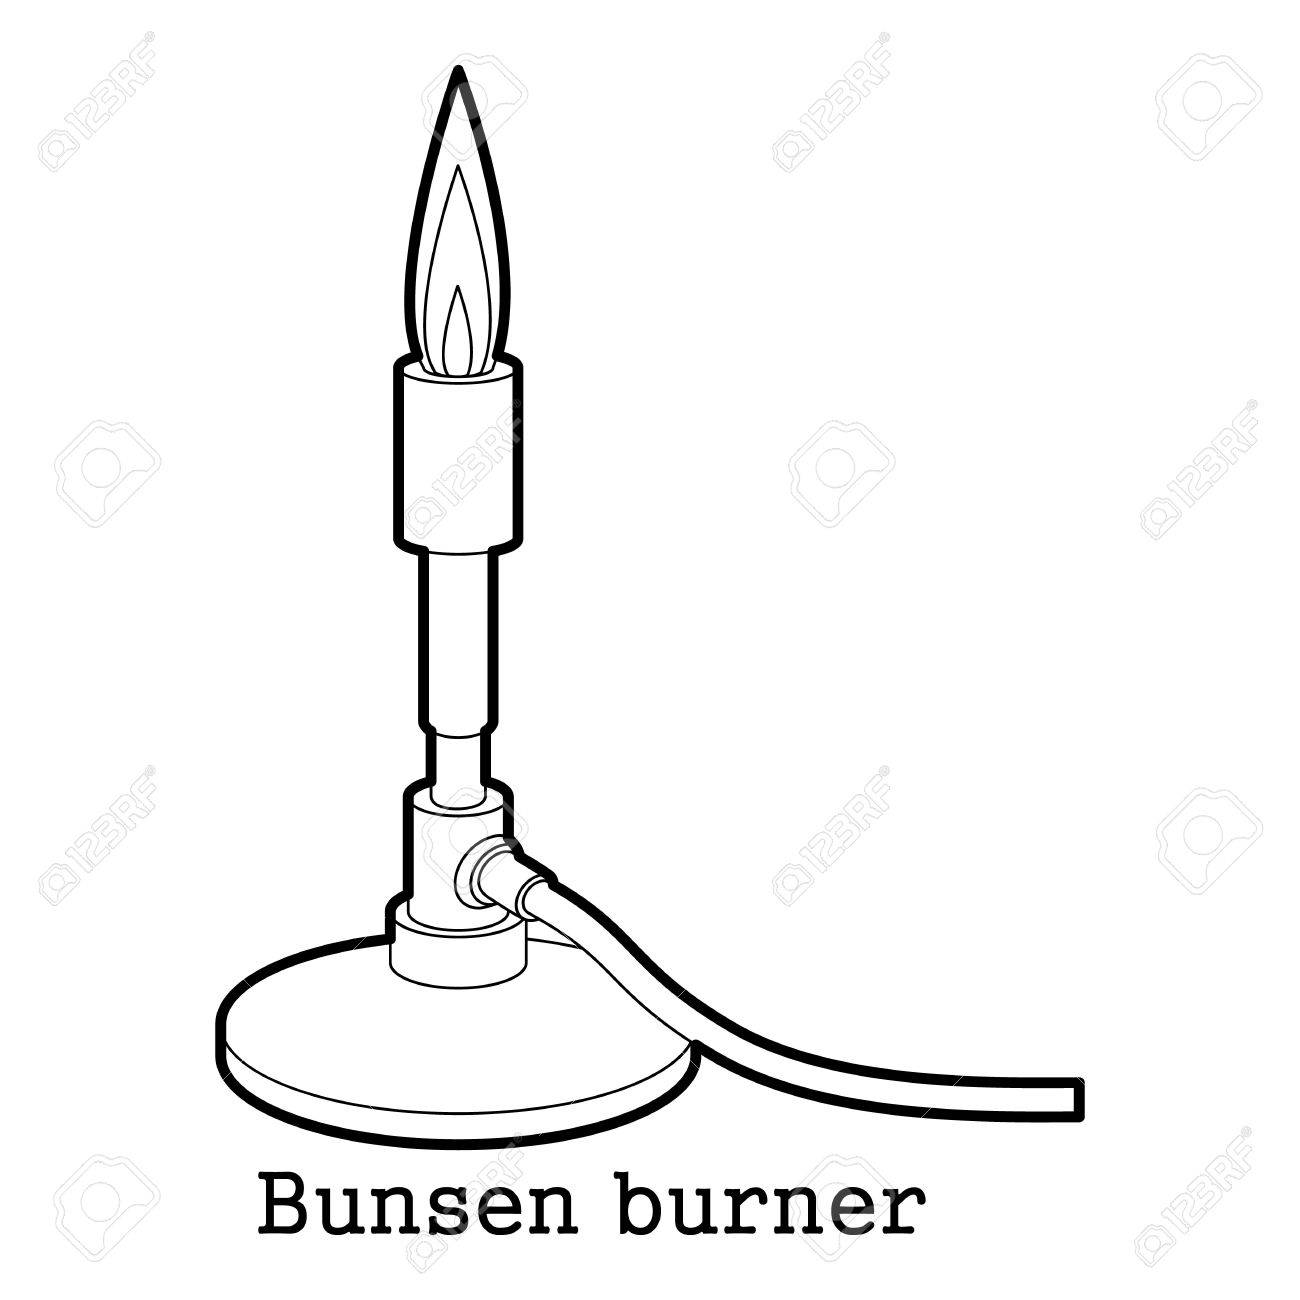 Bunsen Burner Icon Outline Royalty Free Cliparts, Vectors, And Stock ... for Bunsen Burner Drawing  76uhy